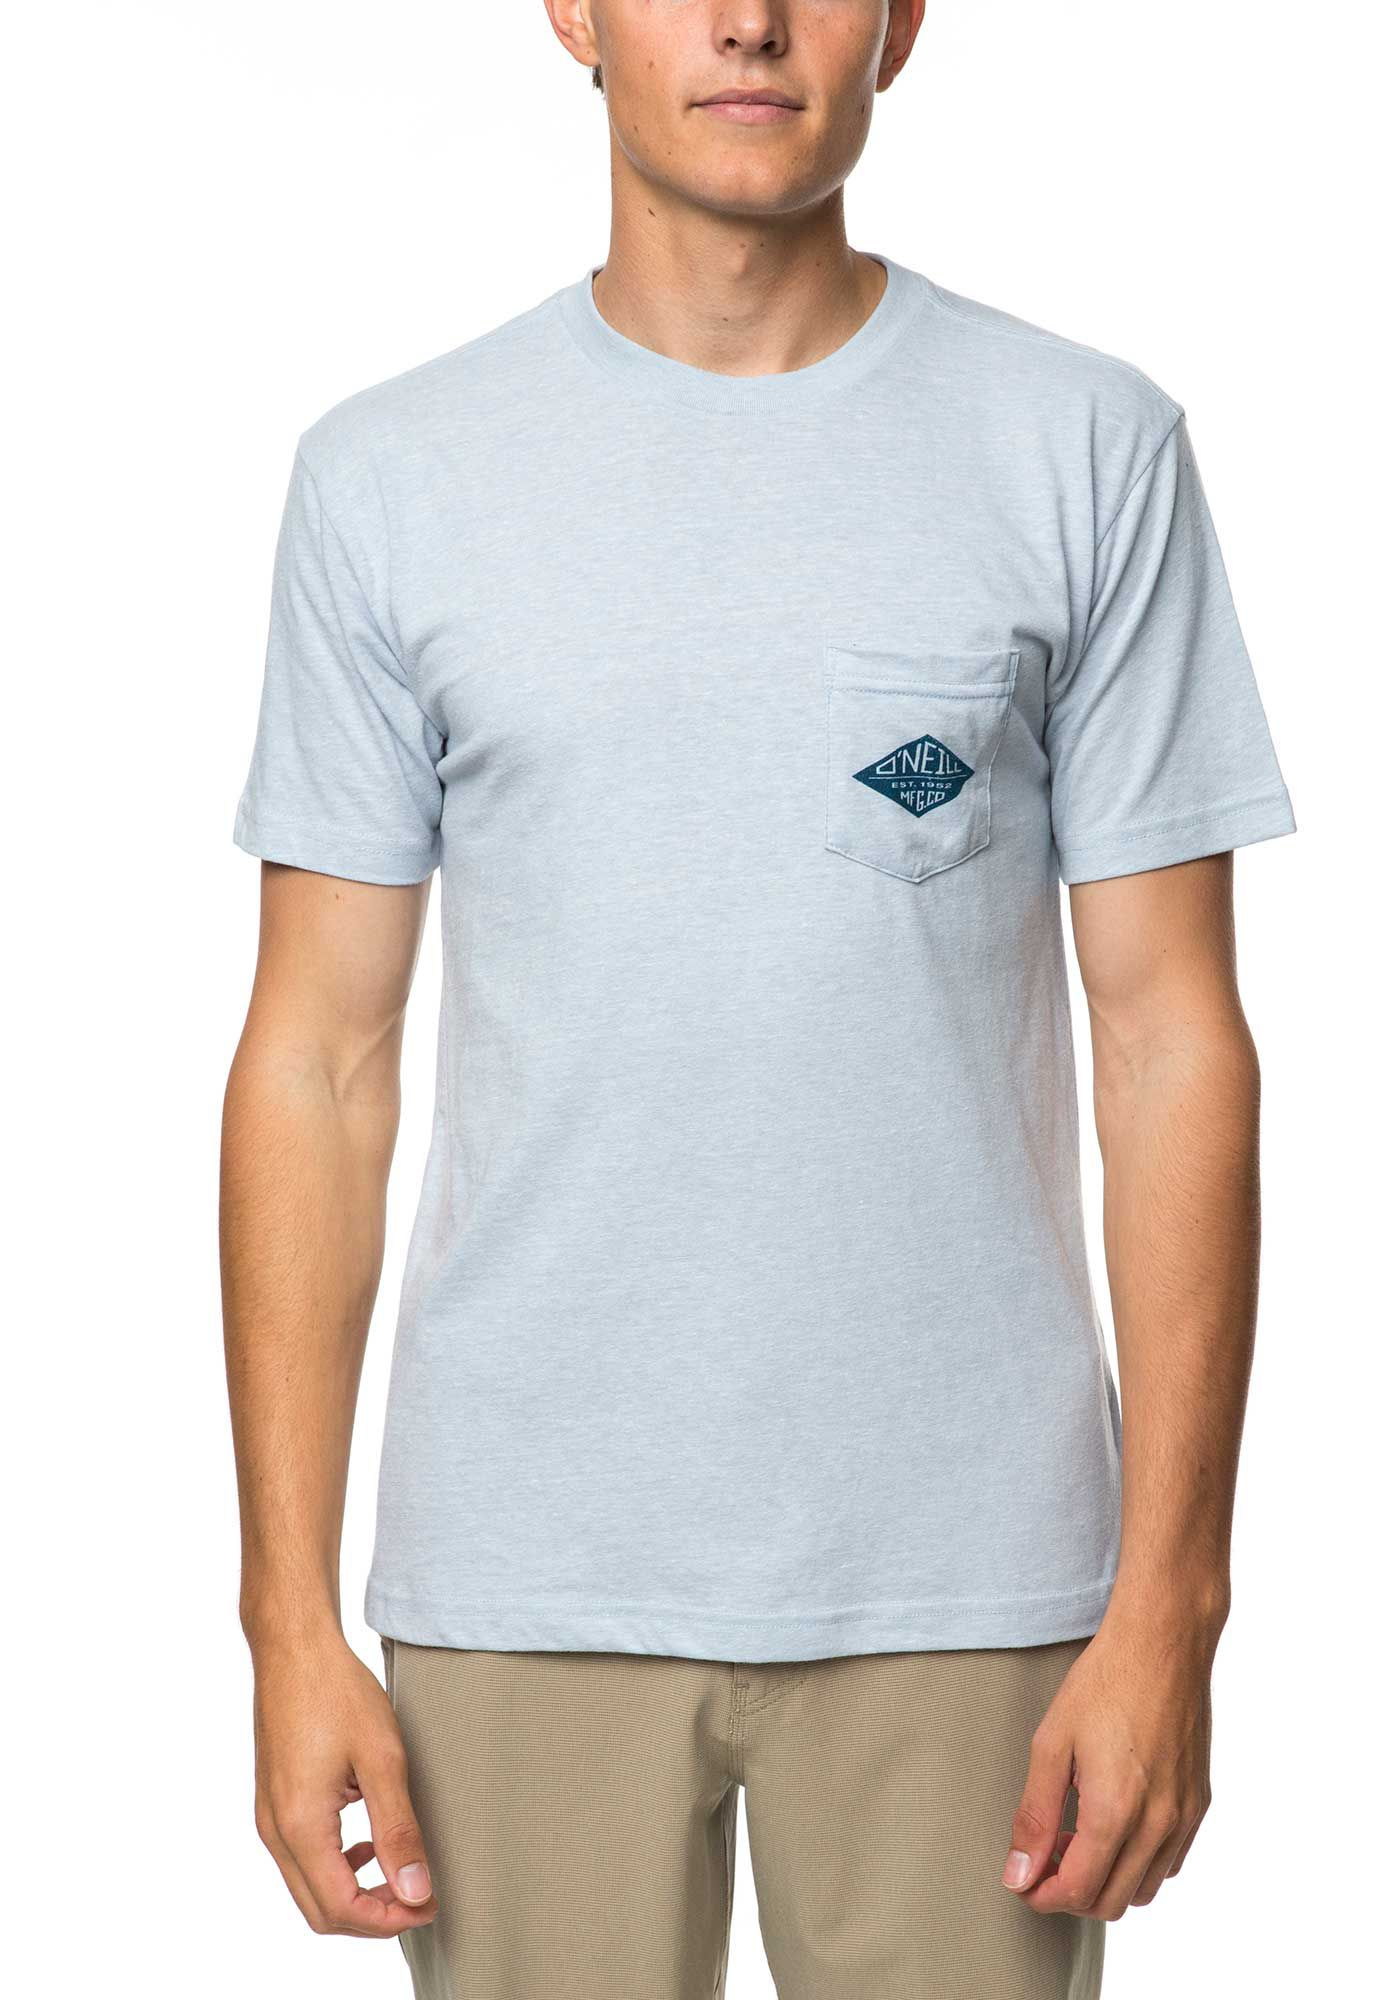 O'Neill Men's Diamonds Pocket Short Sleeve T-Shirt